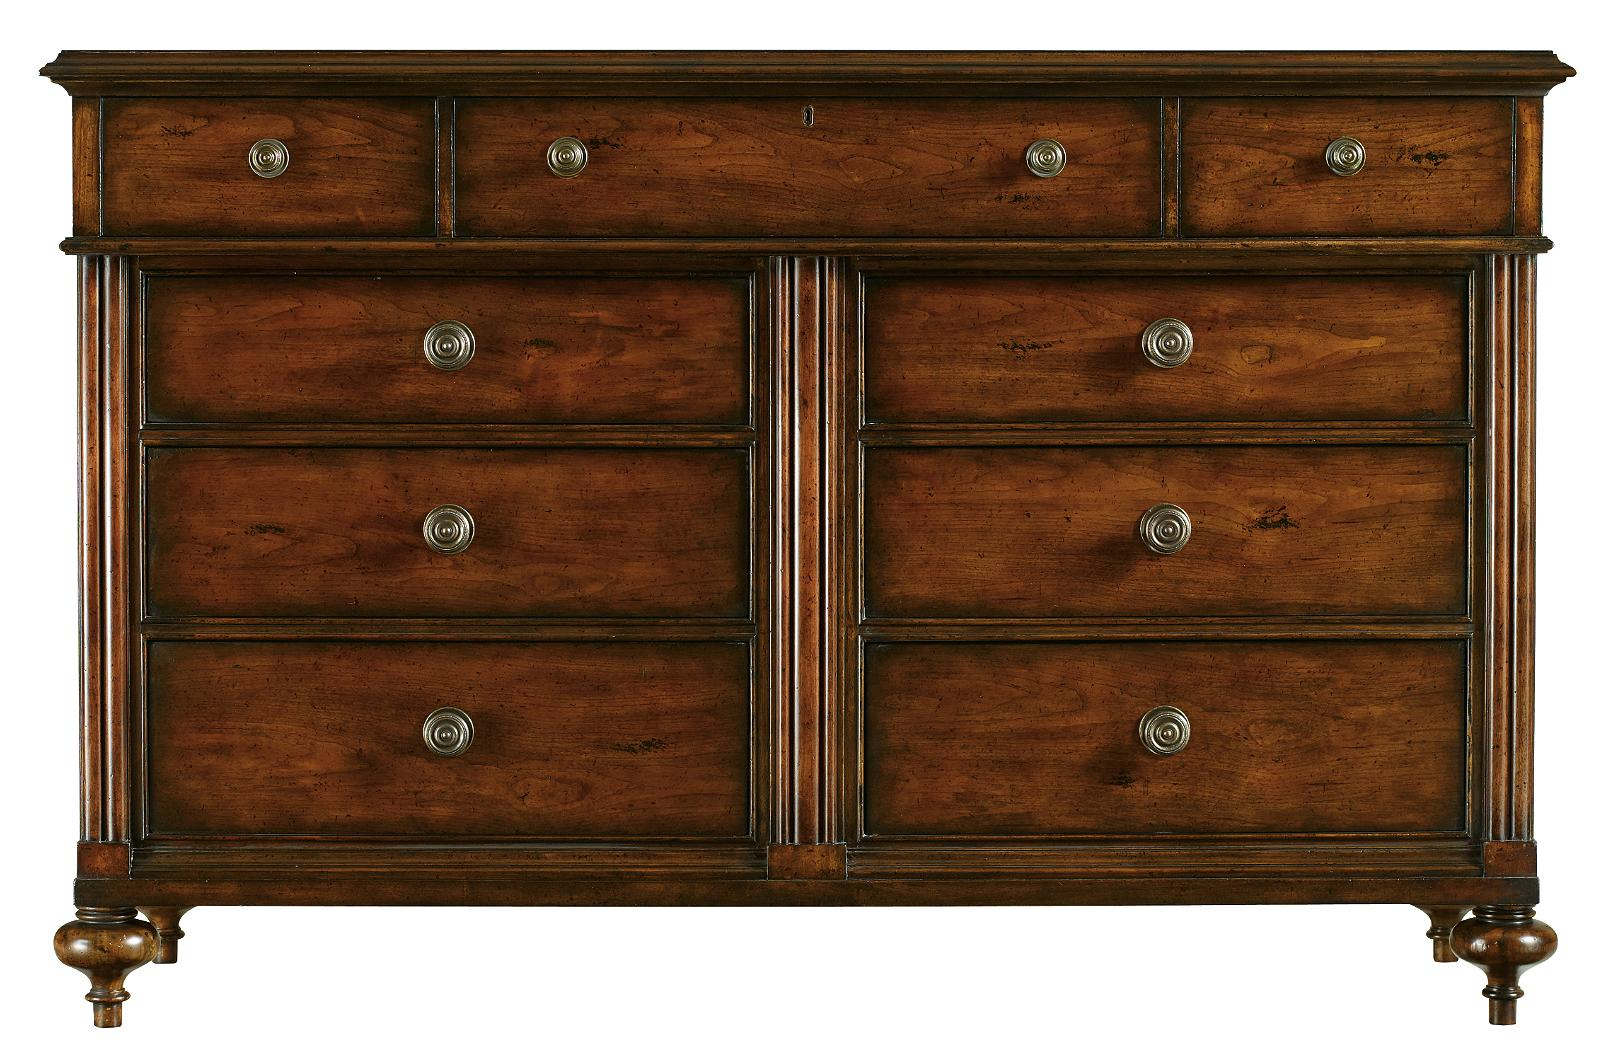 Stanley Furniture The Classic Portfolio - British Colonial Dresser - Item Number: 020-63-05